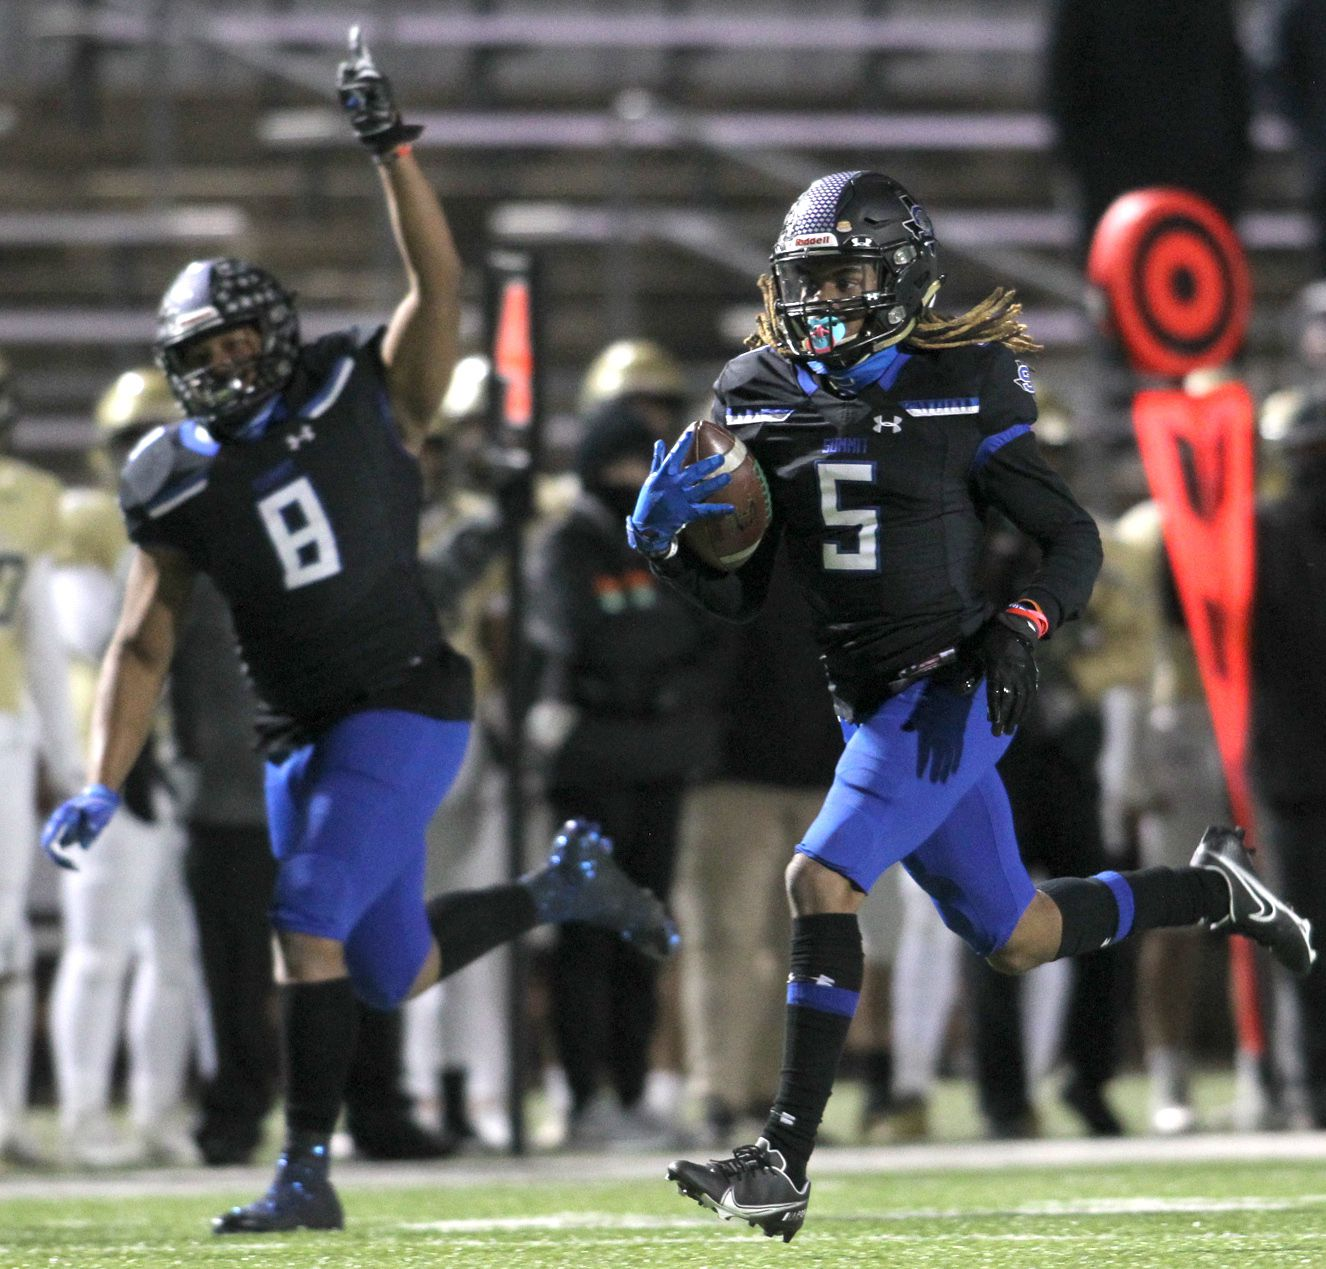 Mansfield Summit defensive back Sean Smith (5) sprints to the end zone to score a first quarter touchdown on a punt return against Birdville as teammate Kamren Washington (8) begins the celebration. The two teams played their District 4-5A Division l football game at Vernon Newsom Stadium in Mansfield on December 3, 2020. (Steve Hamm/ Special Contributor)